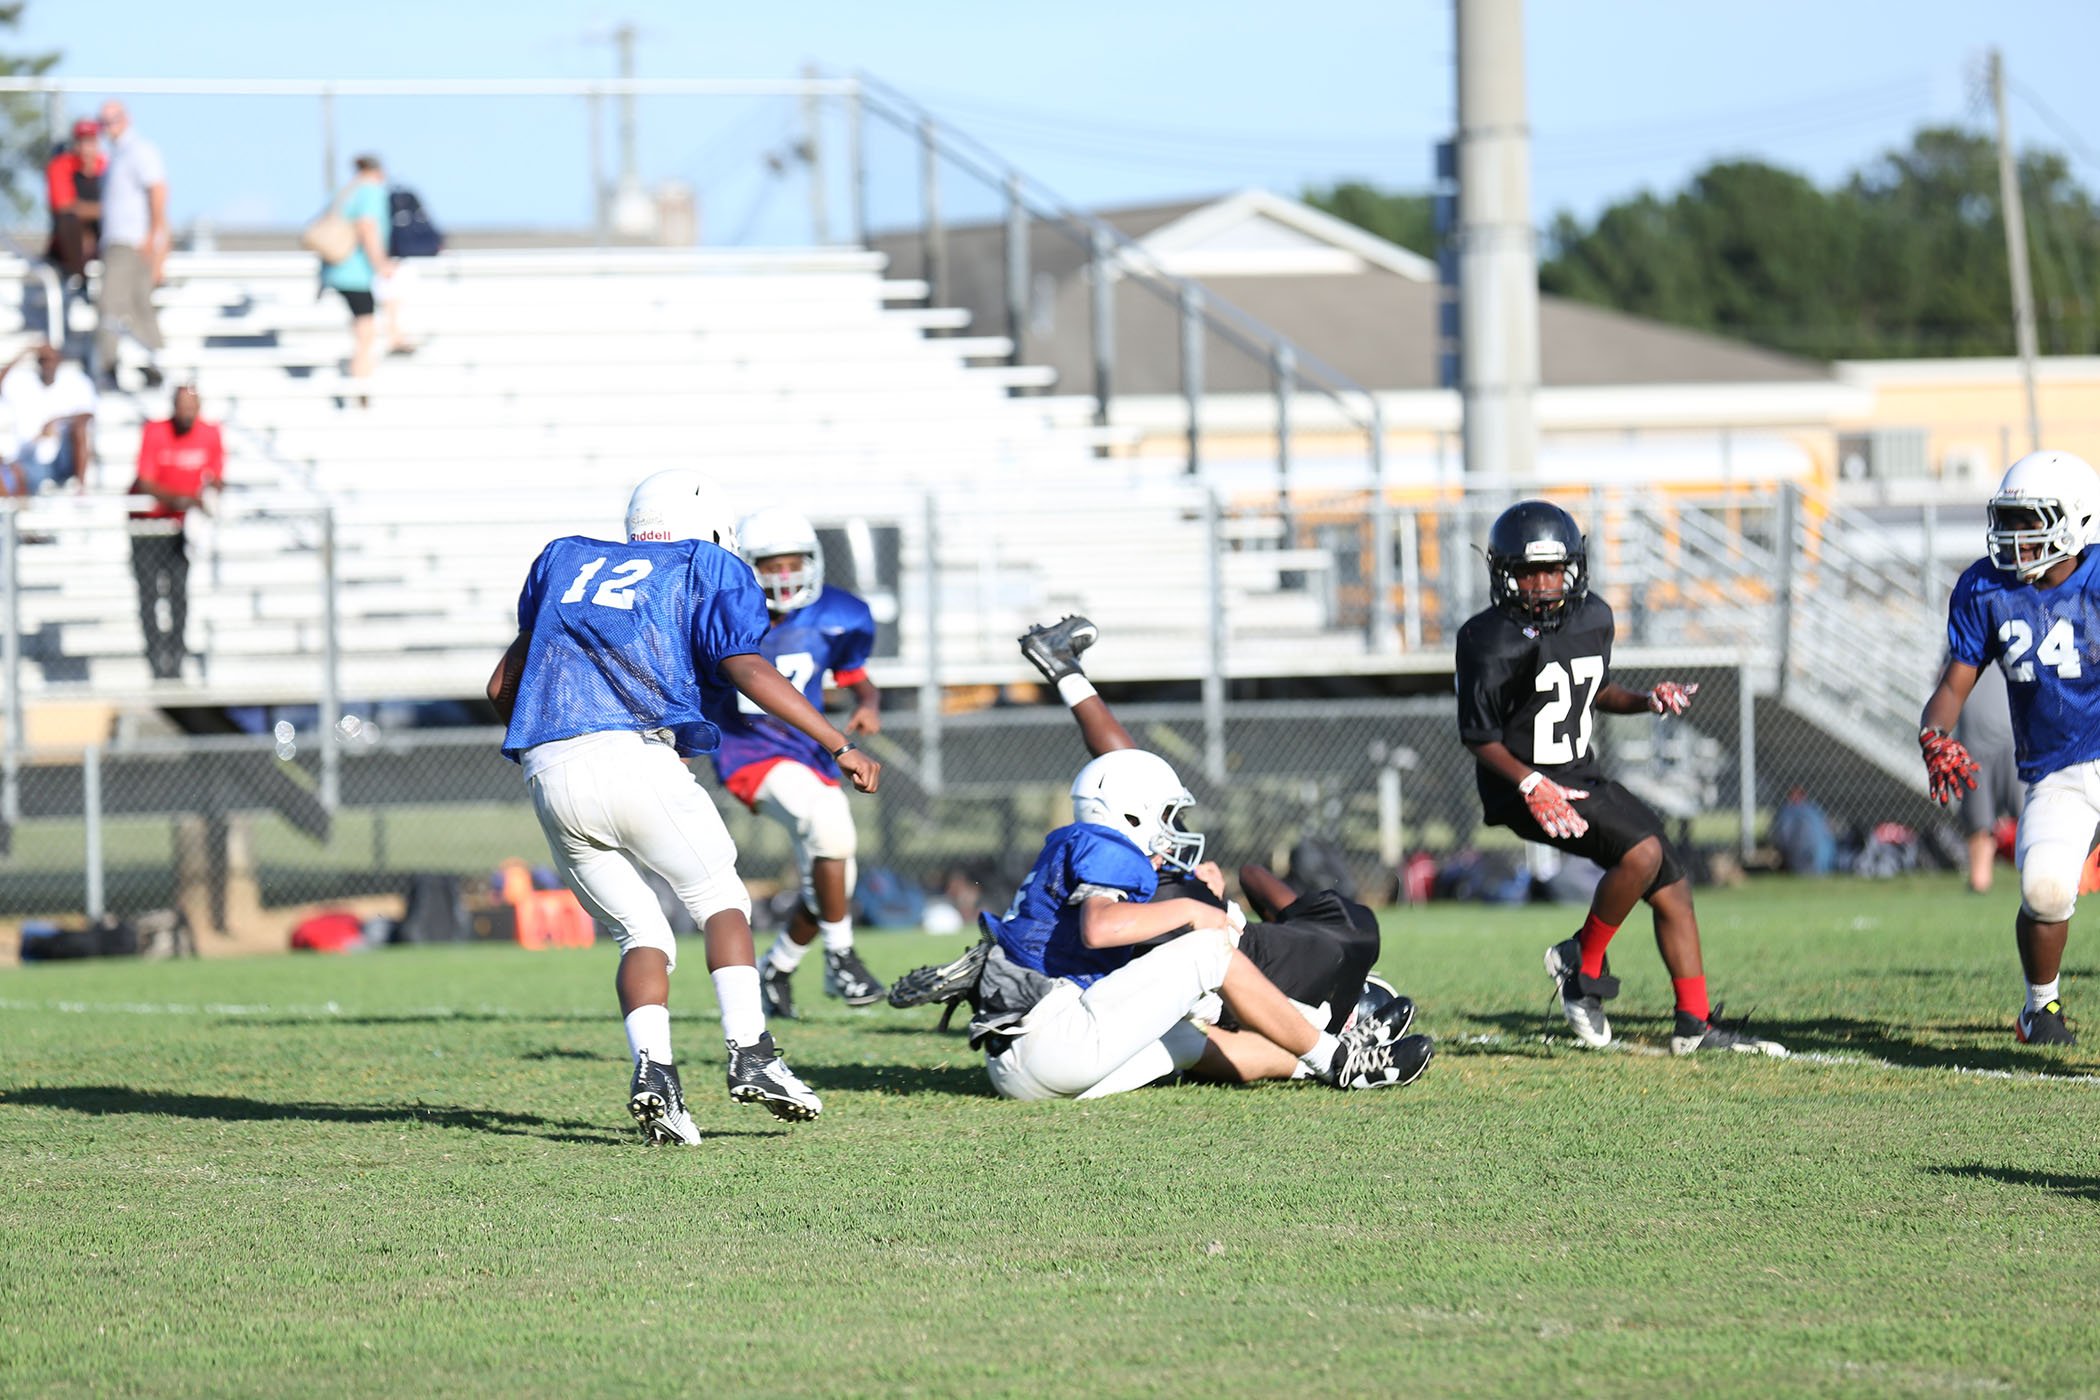 A QJH Panther football player makes a great tackle in last night's game.